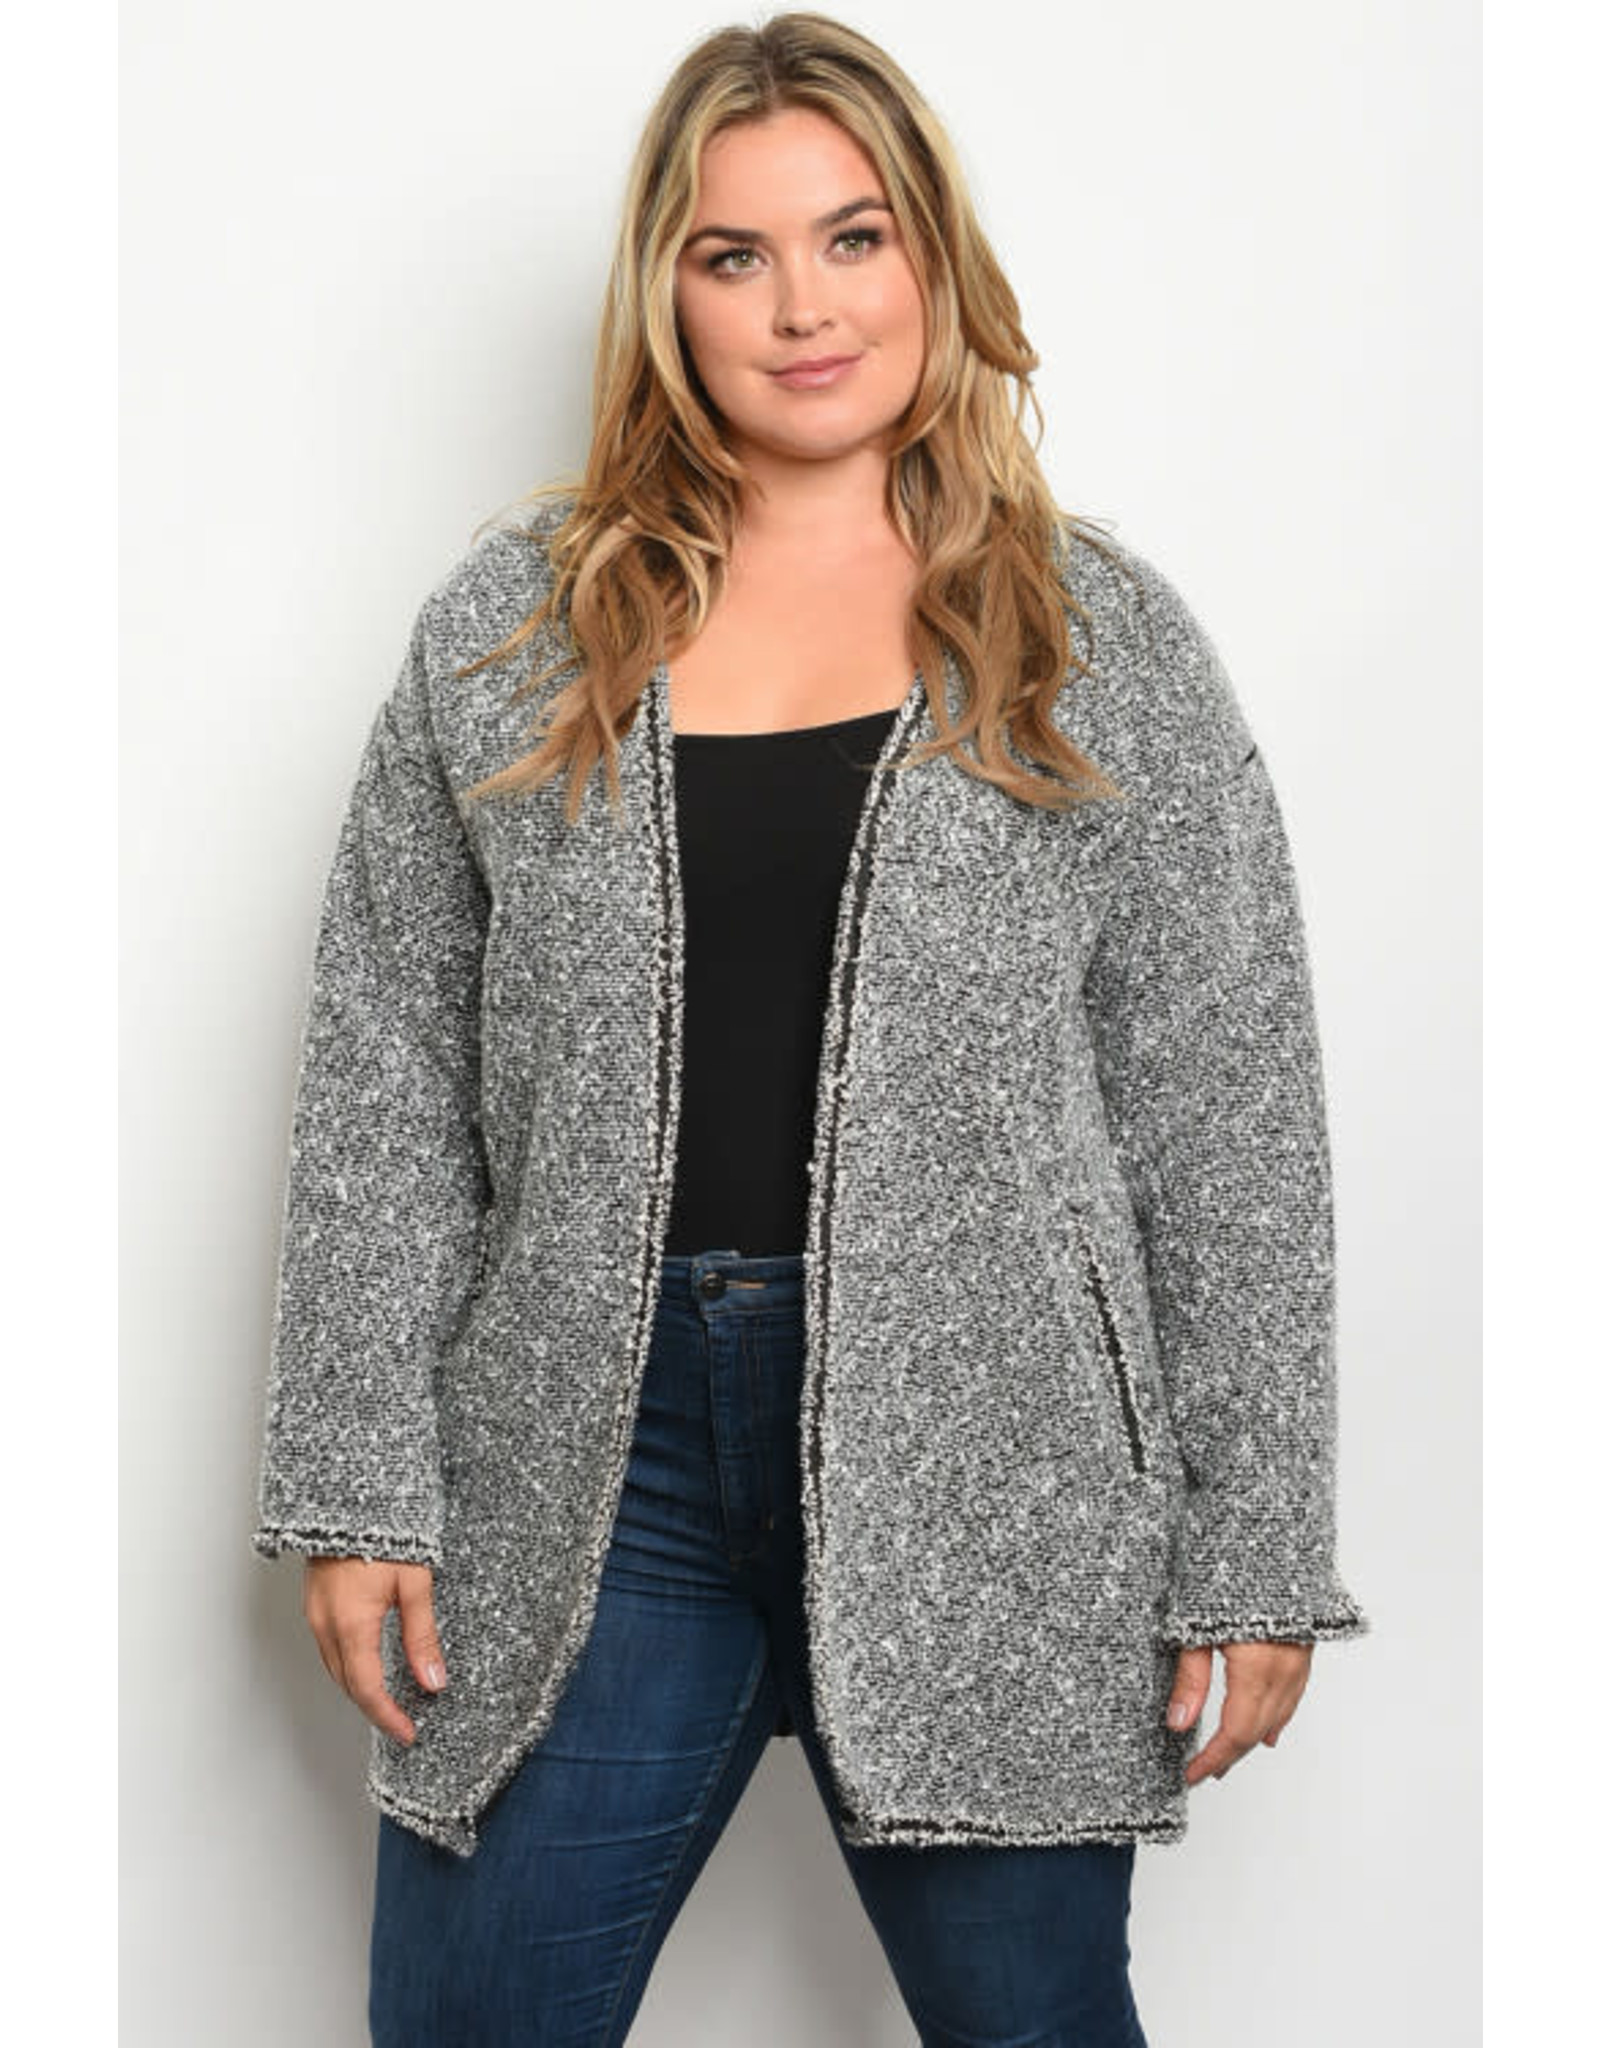 Clothing Obessed Company Gray Jacket